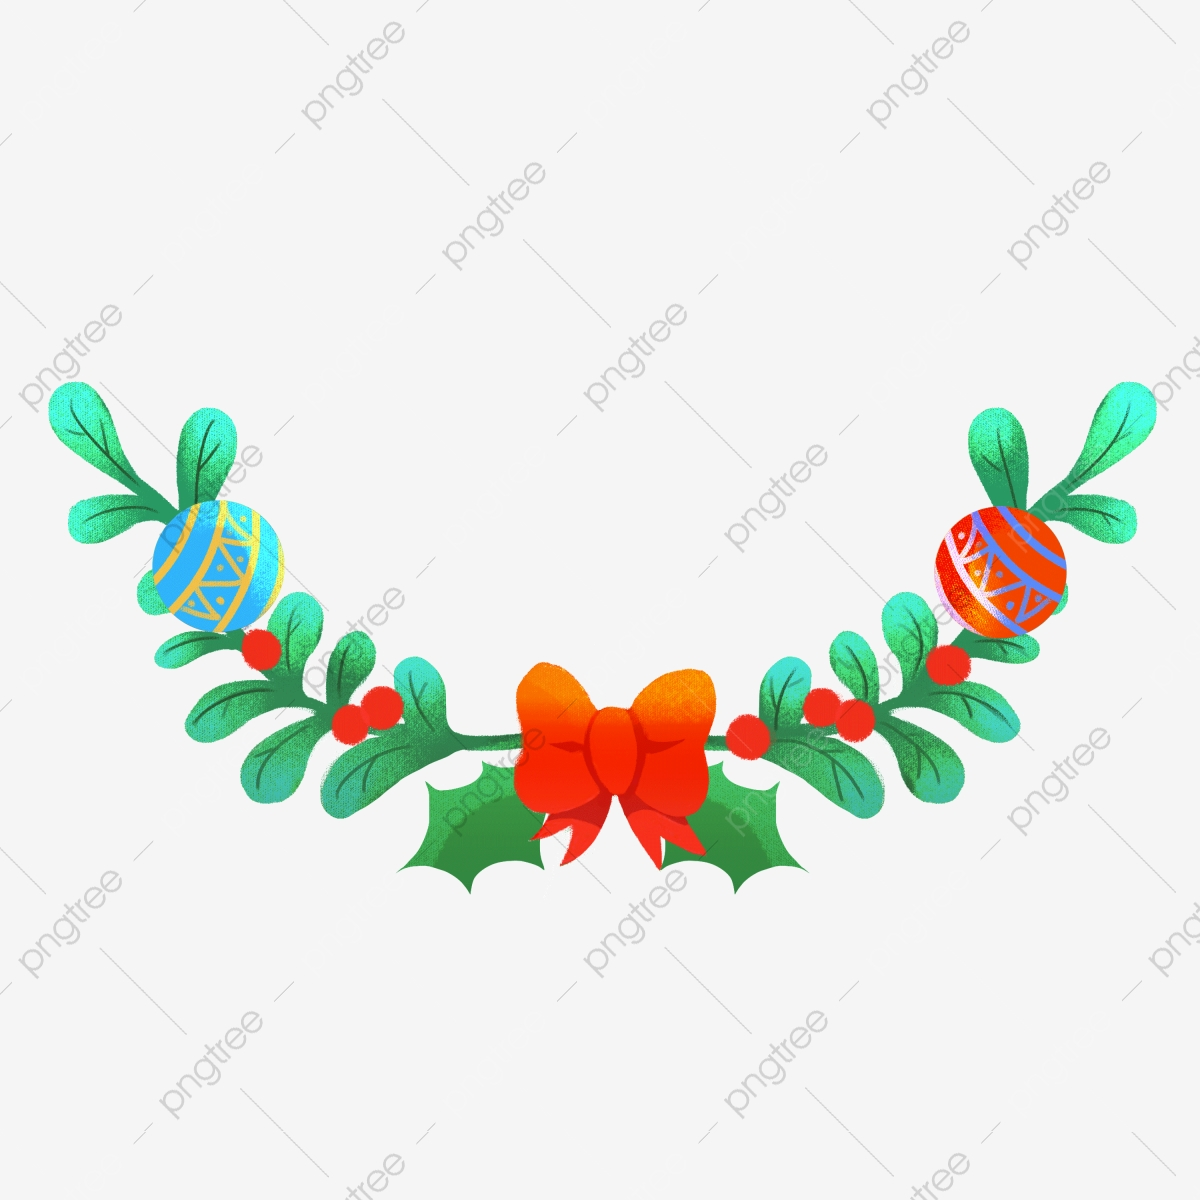 Merry Christmas Writing Clipart.Merry Christmas Text Design Christmas Writing Hat Png